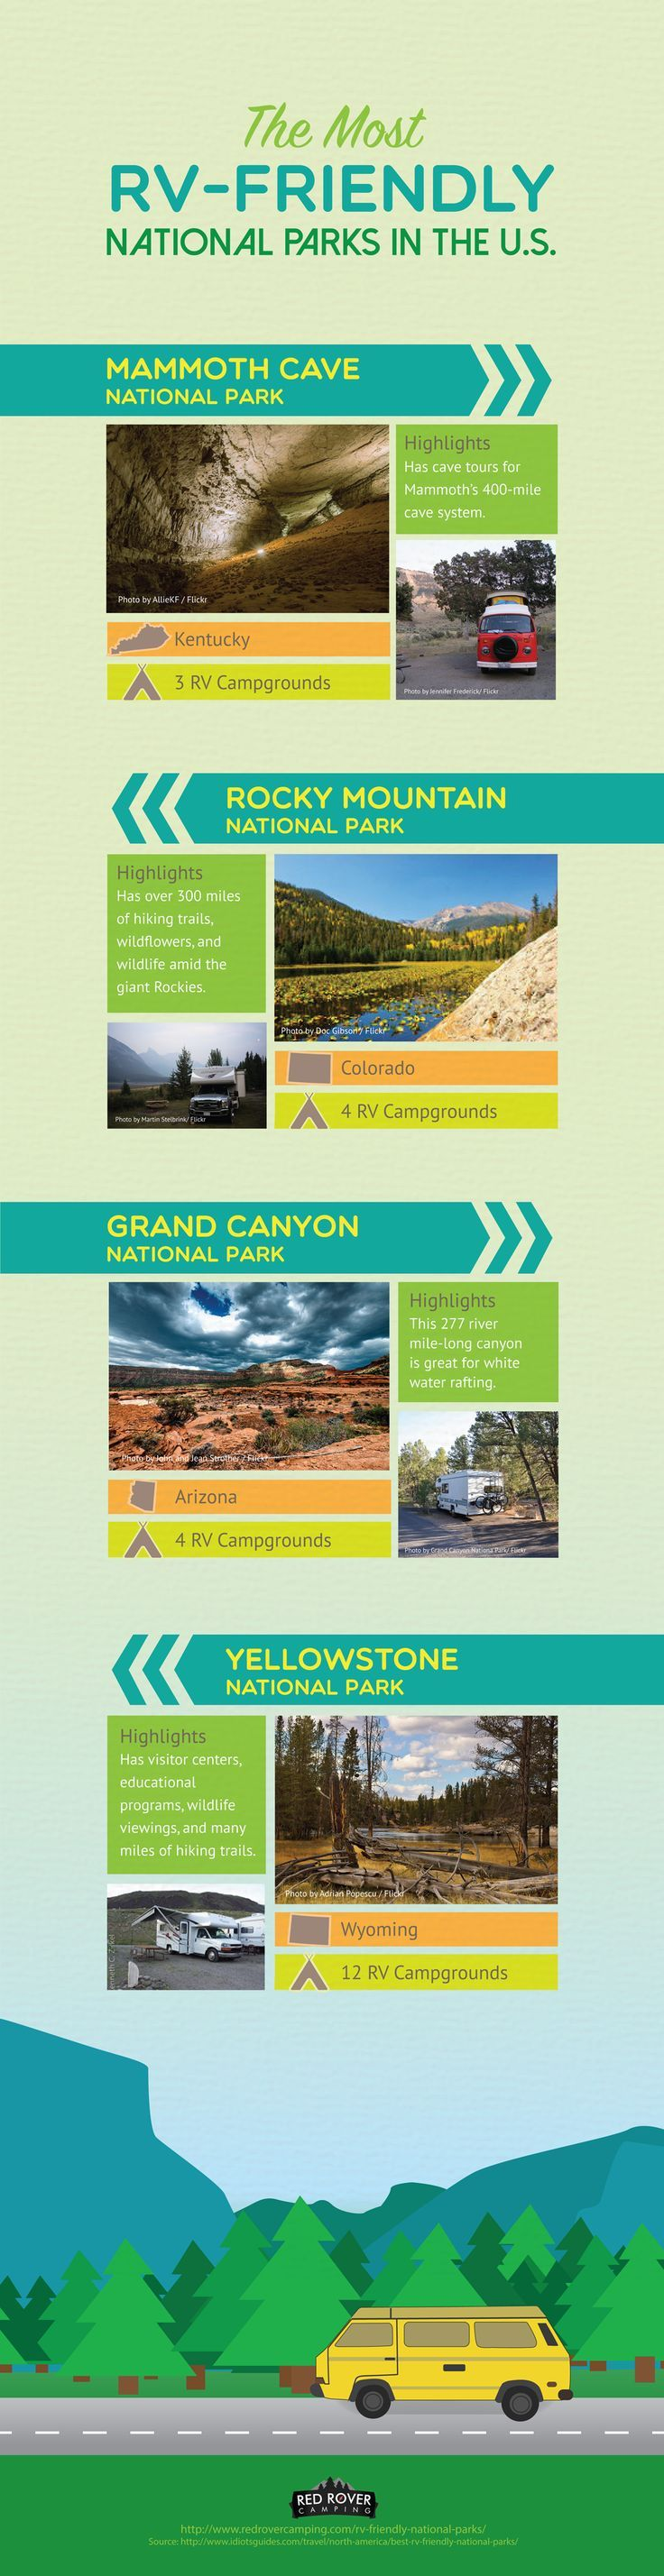 17 best ideas about rv travel rv rv camping and rv here are some of the friendliest national parks in the united states for rvers